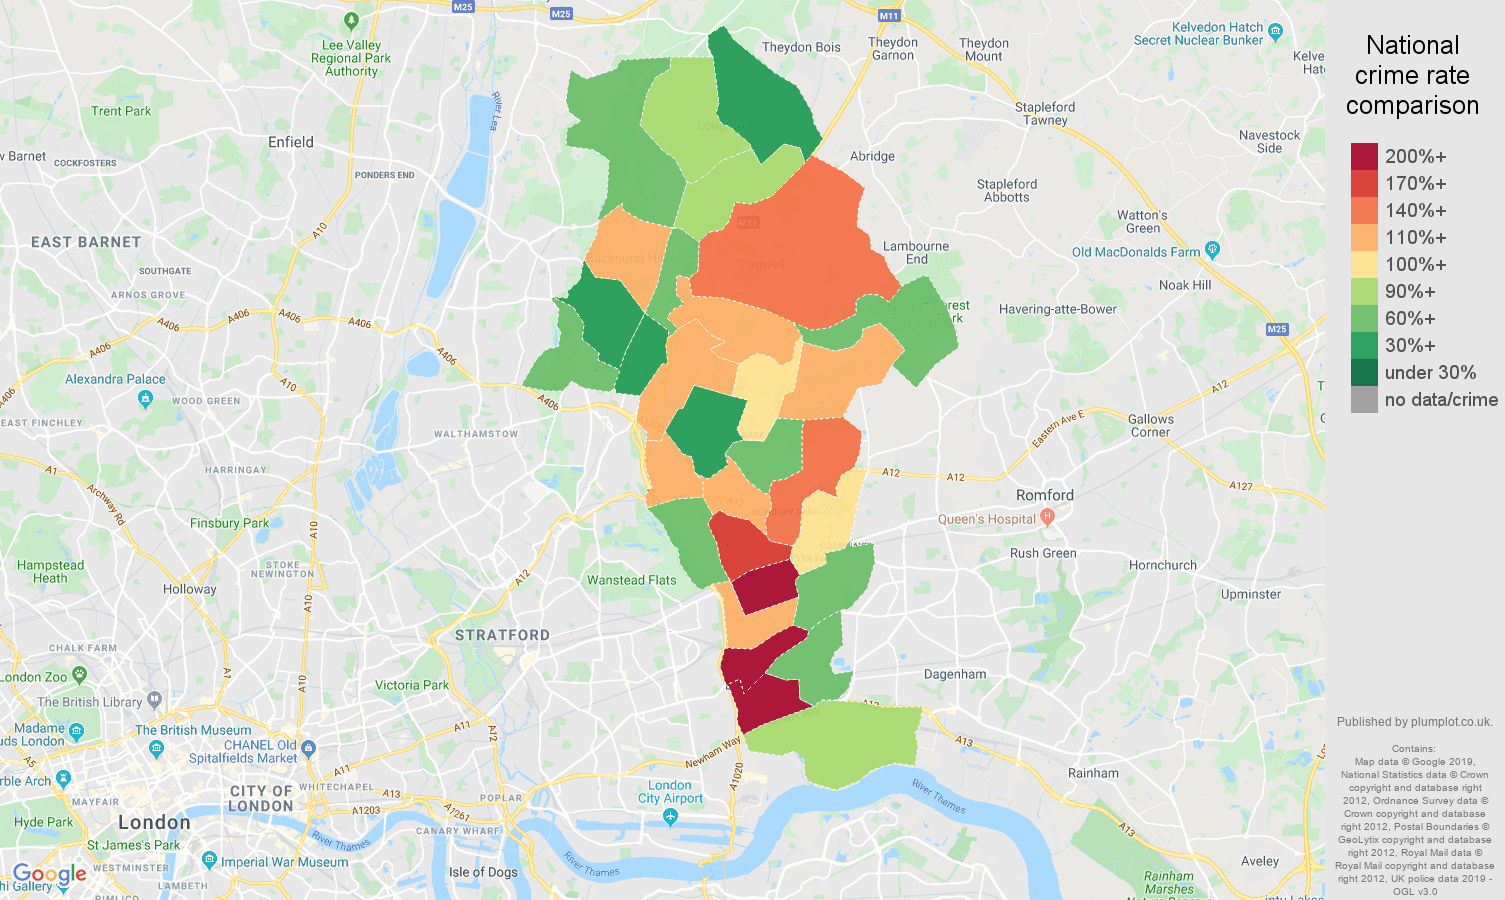 Ilford other theft crime rate comparison map